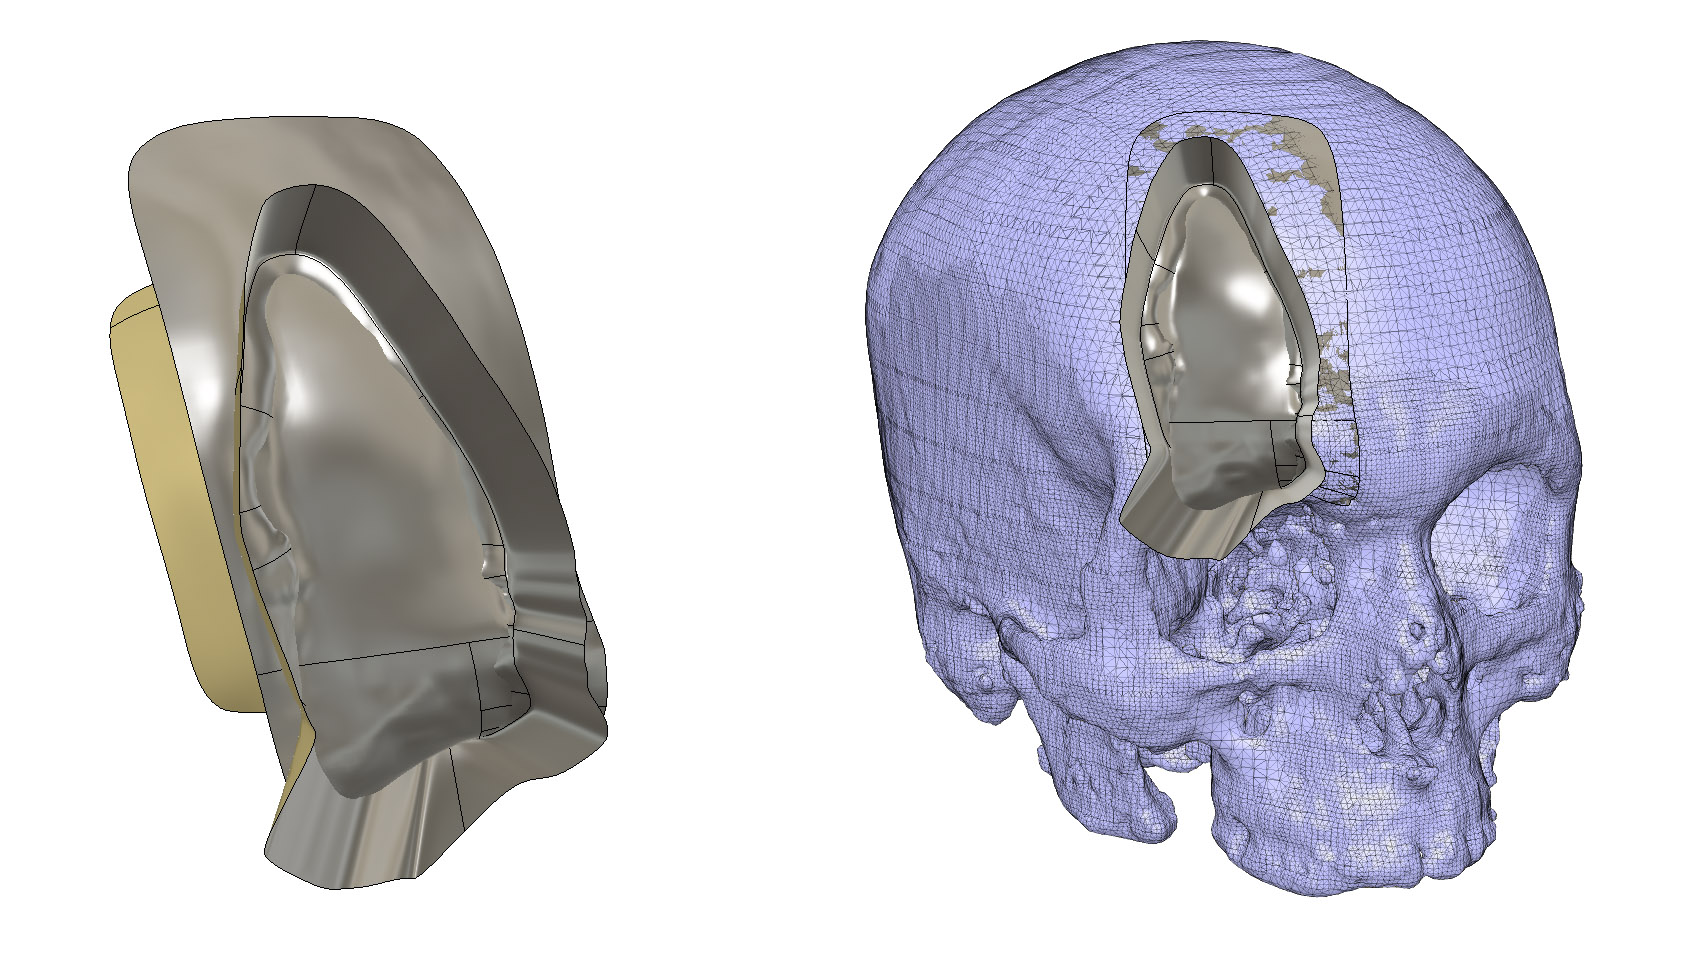 Inserting the skull and surfaces into Fusion 360.